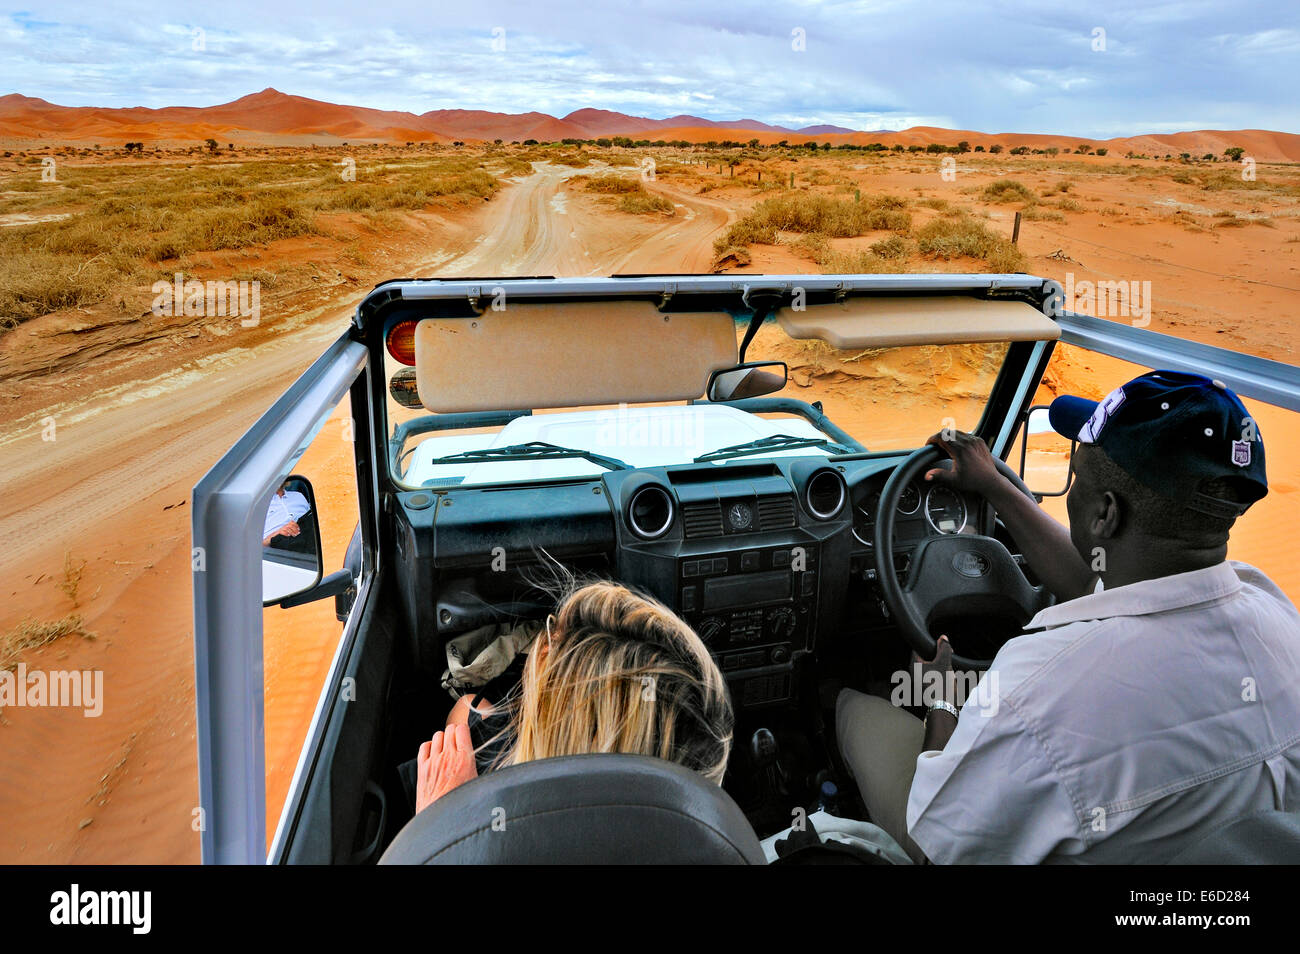 In Safari car on the dunes of the Sossusvlei, Namibia - Stock Image